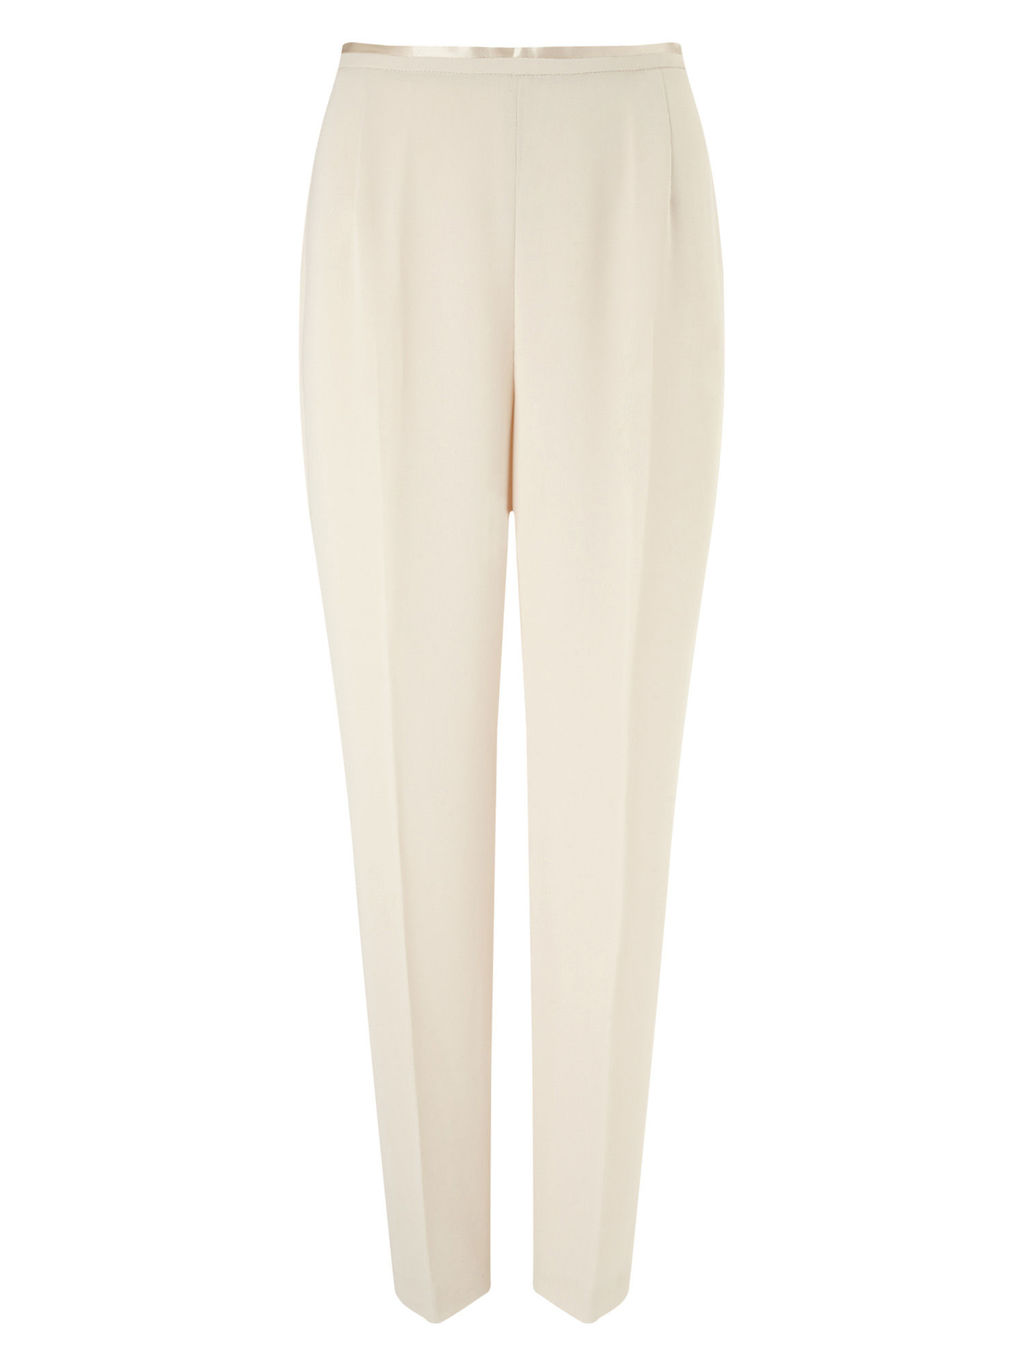 Crepe Trouser - length: standard; pattern: plain; waist: mid/regular rise; predominant colour: ivory/cream; occasions: casual, work, creative work; fibres: polyester/polyamide - 100%; hip detail: front pleats at hip level; texture group: crepes; fit: straight leg; pattern type: fabric; style: standard; season: s/s 2016; wardrobe: basic